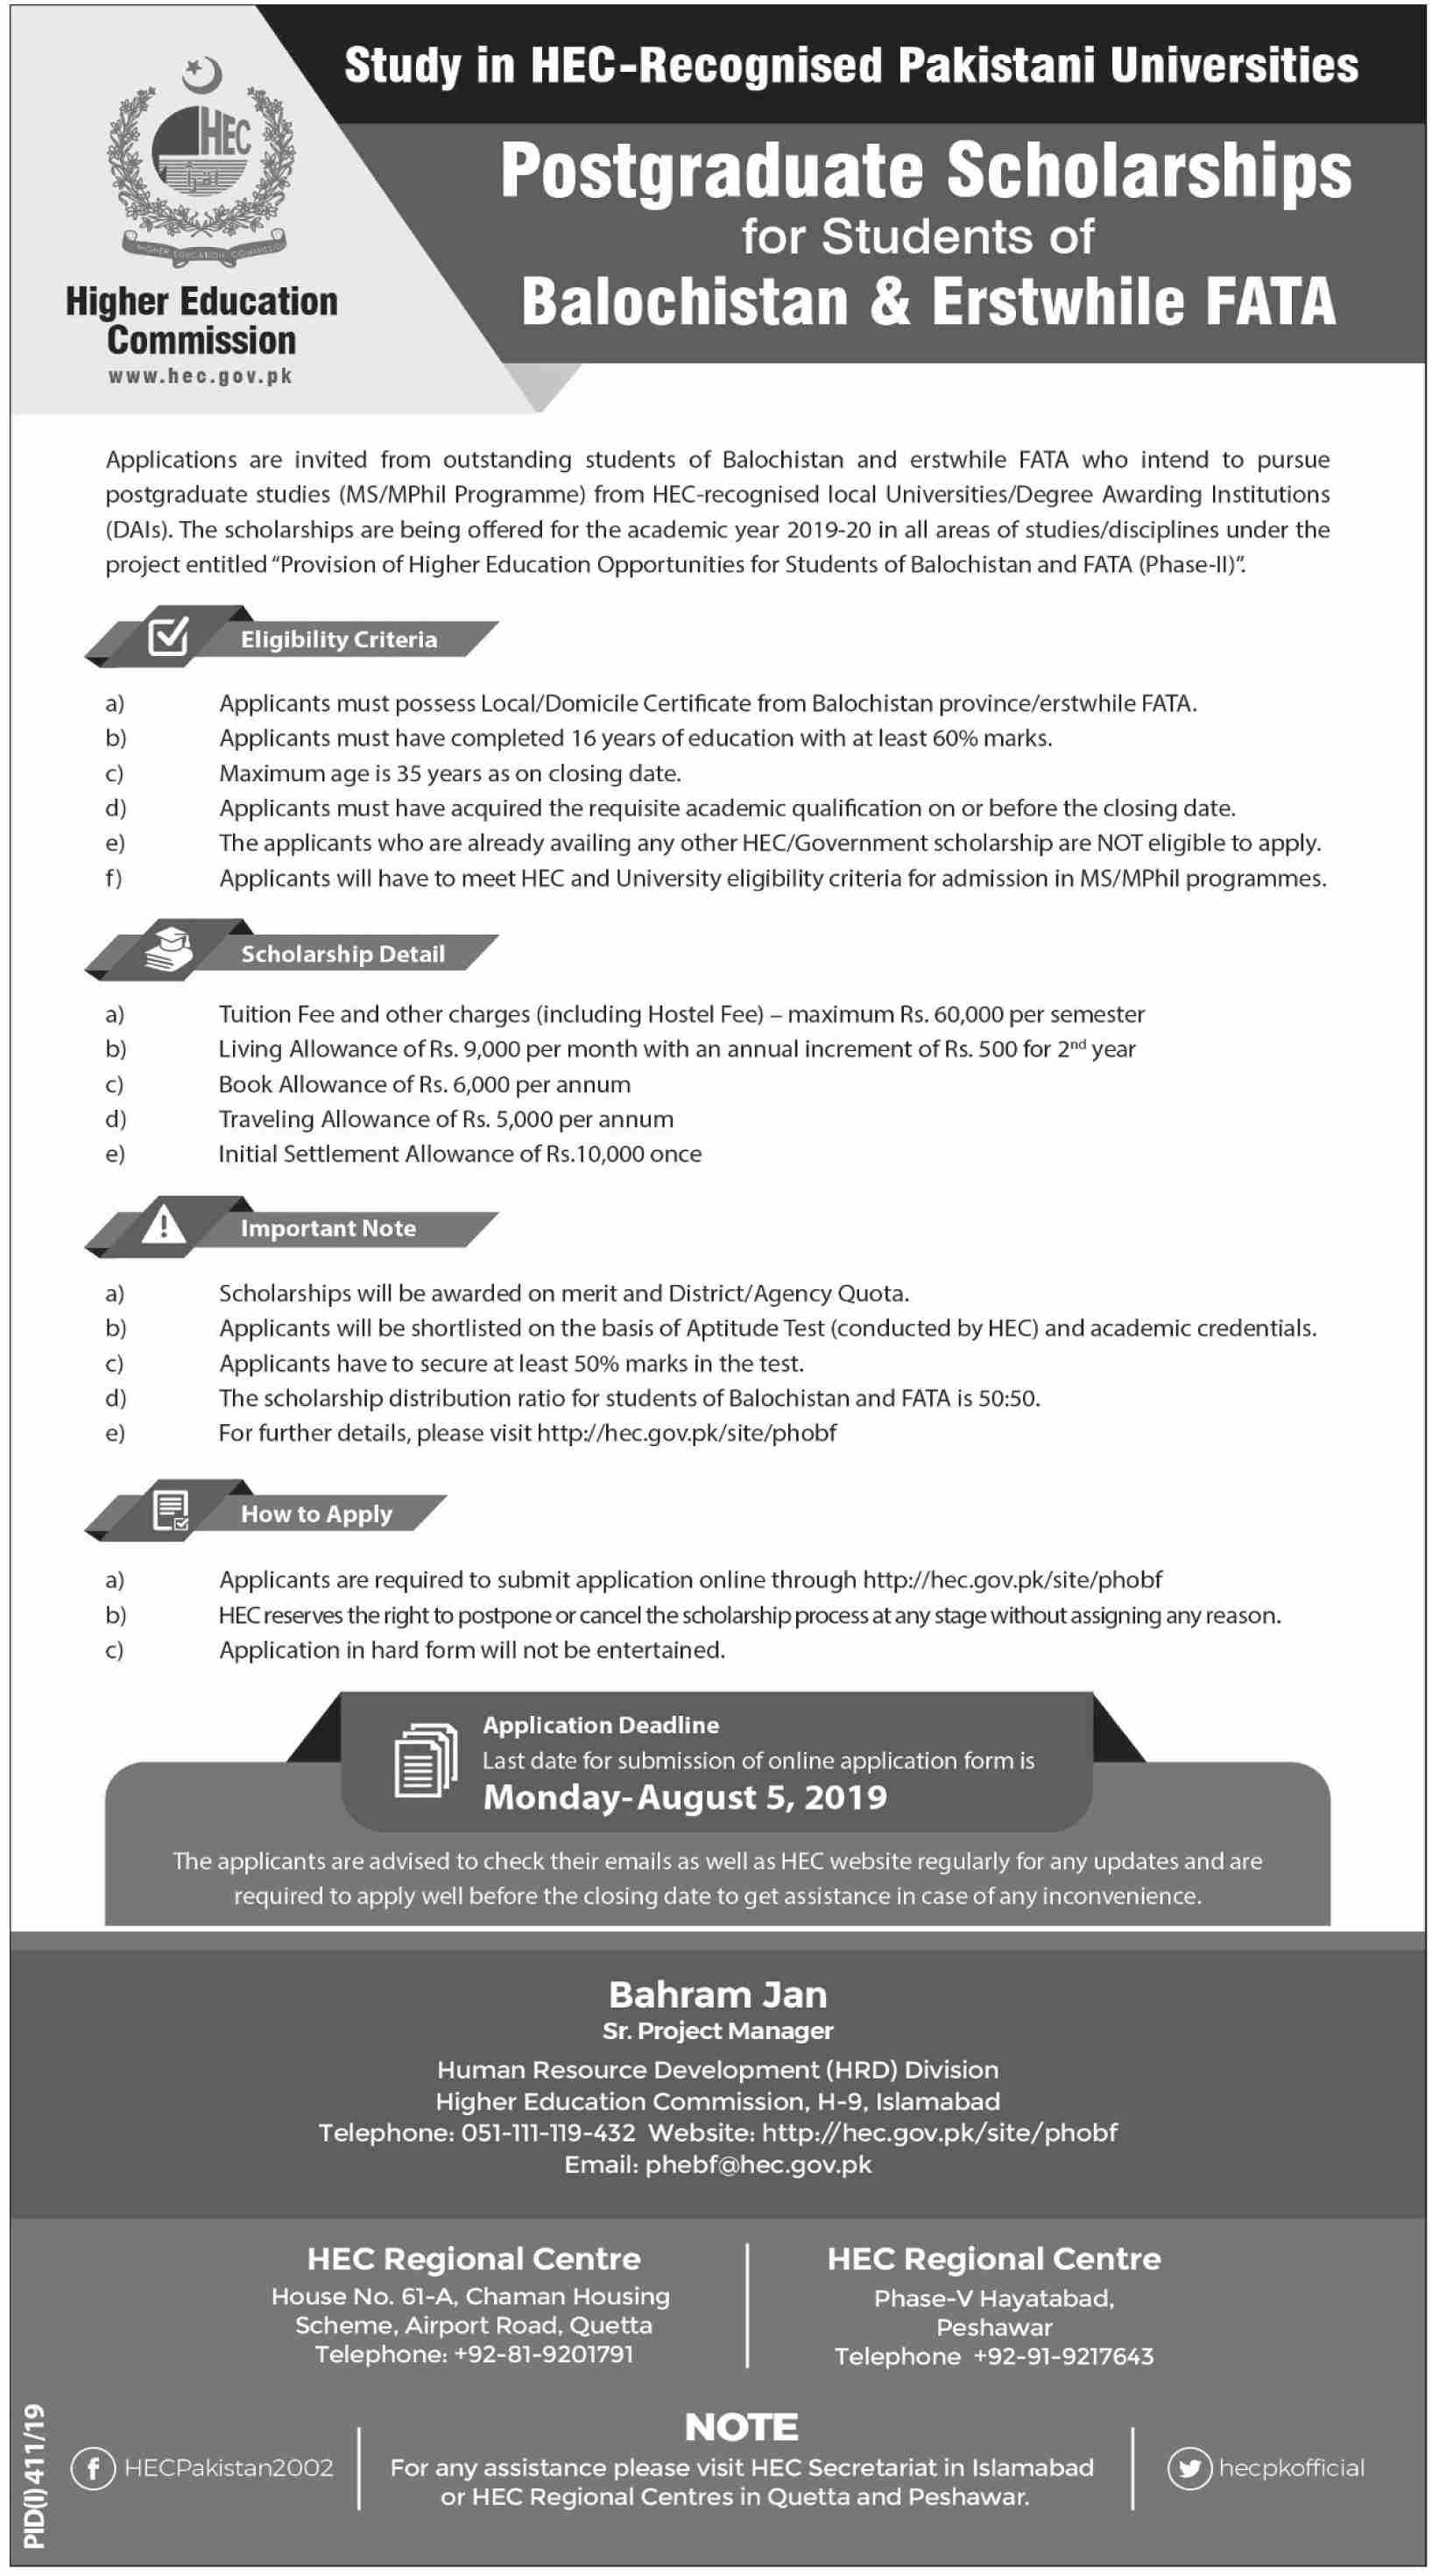 HEC Postgraduate Scholarships for Students of Balochistan & Erstwhile FATA